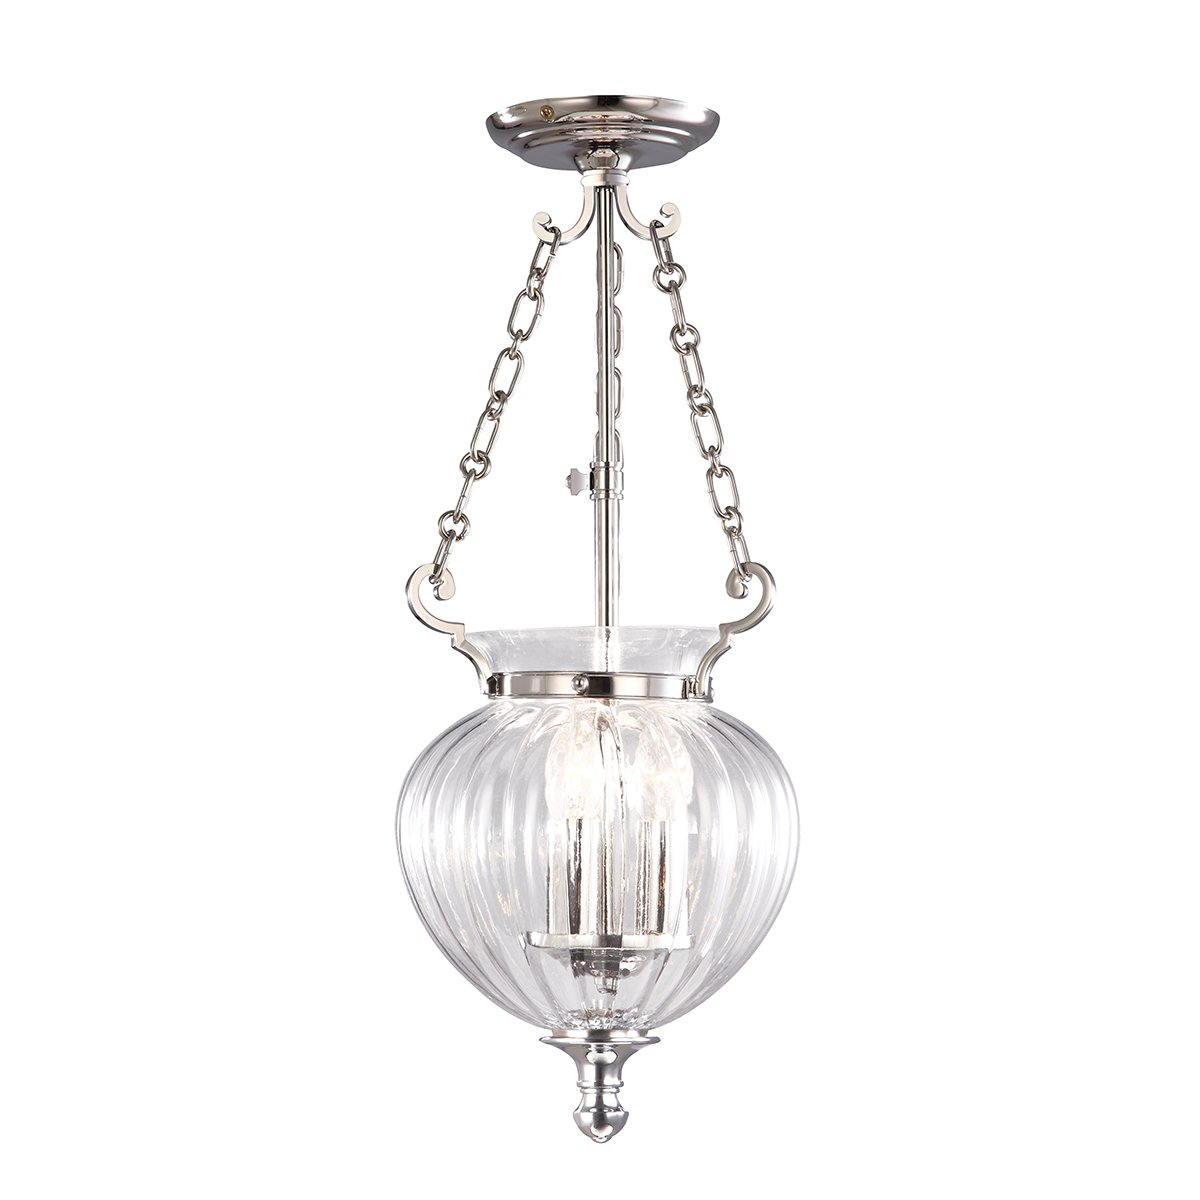 Elstead FP-PS-PN Finsbury Park 3lt Small Lantern in Polished Nickel